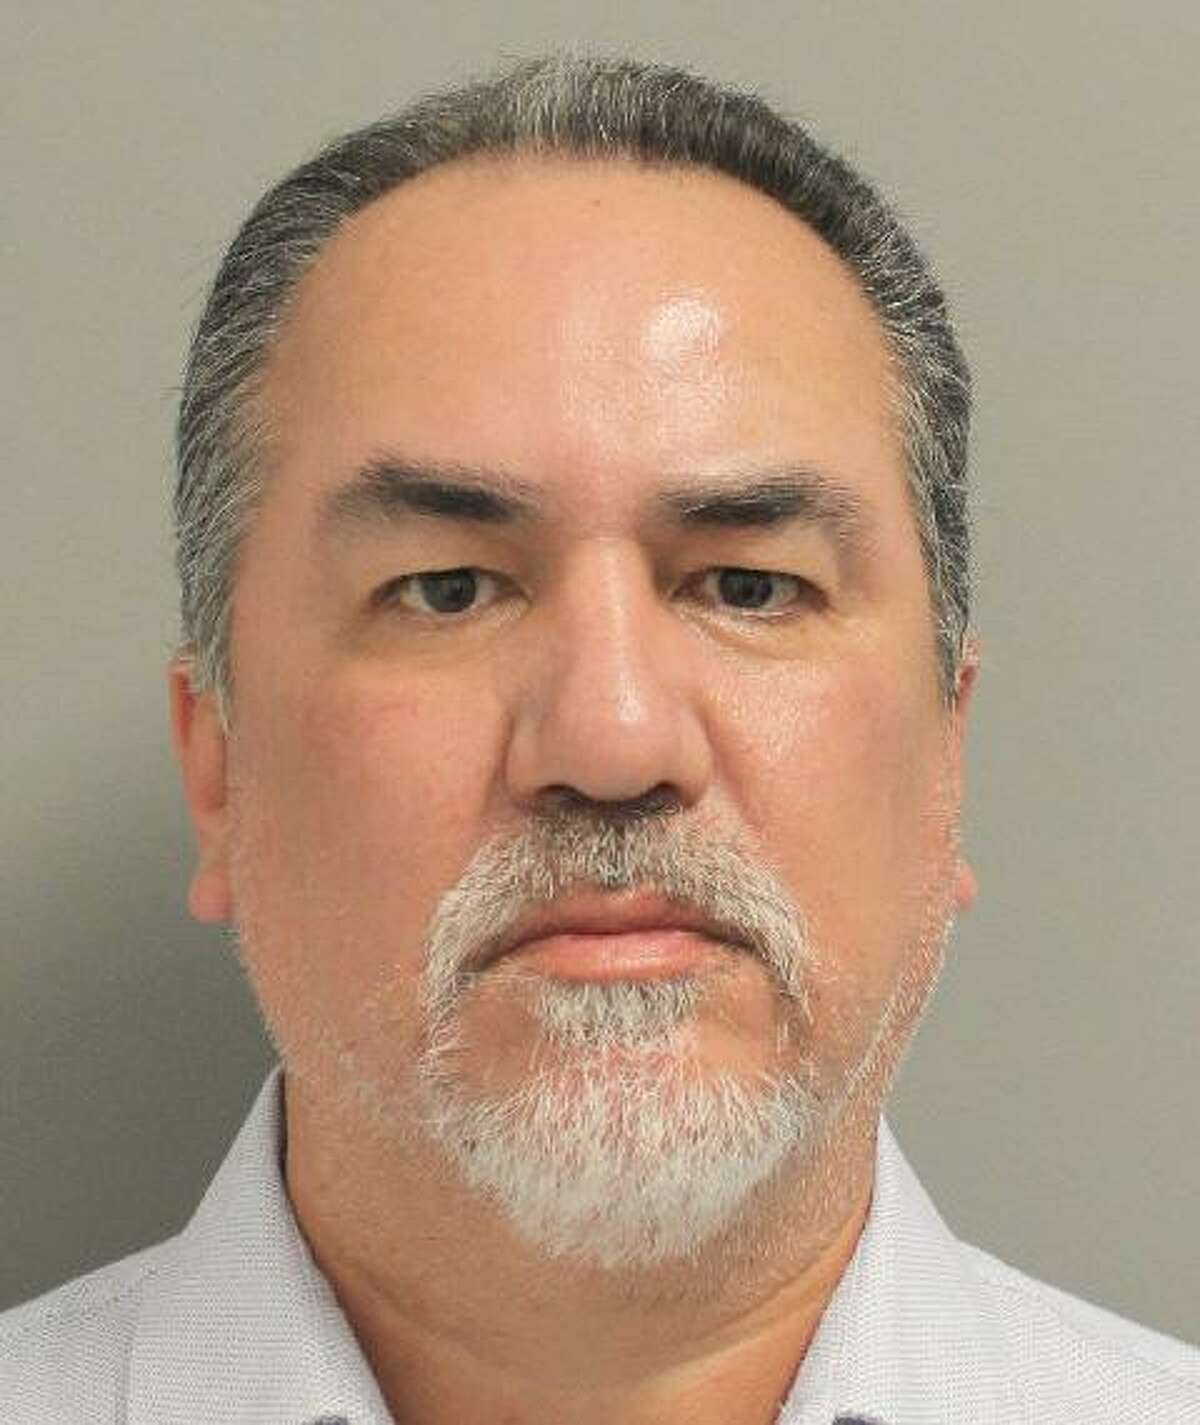 Mugshot of Clemente Reyna, one of four additional former Houston Police narcotics officers Kim Ogg charged with crimes stemming from an investigation into the deadly 2019 drug raid at 7815 Harding street that killed two homeowners.